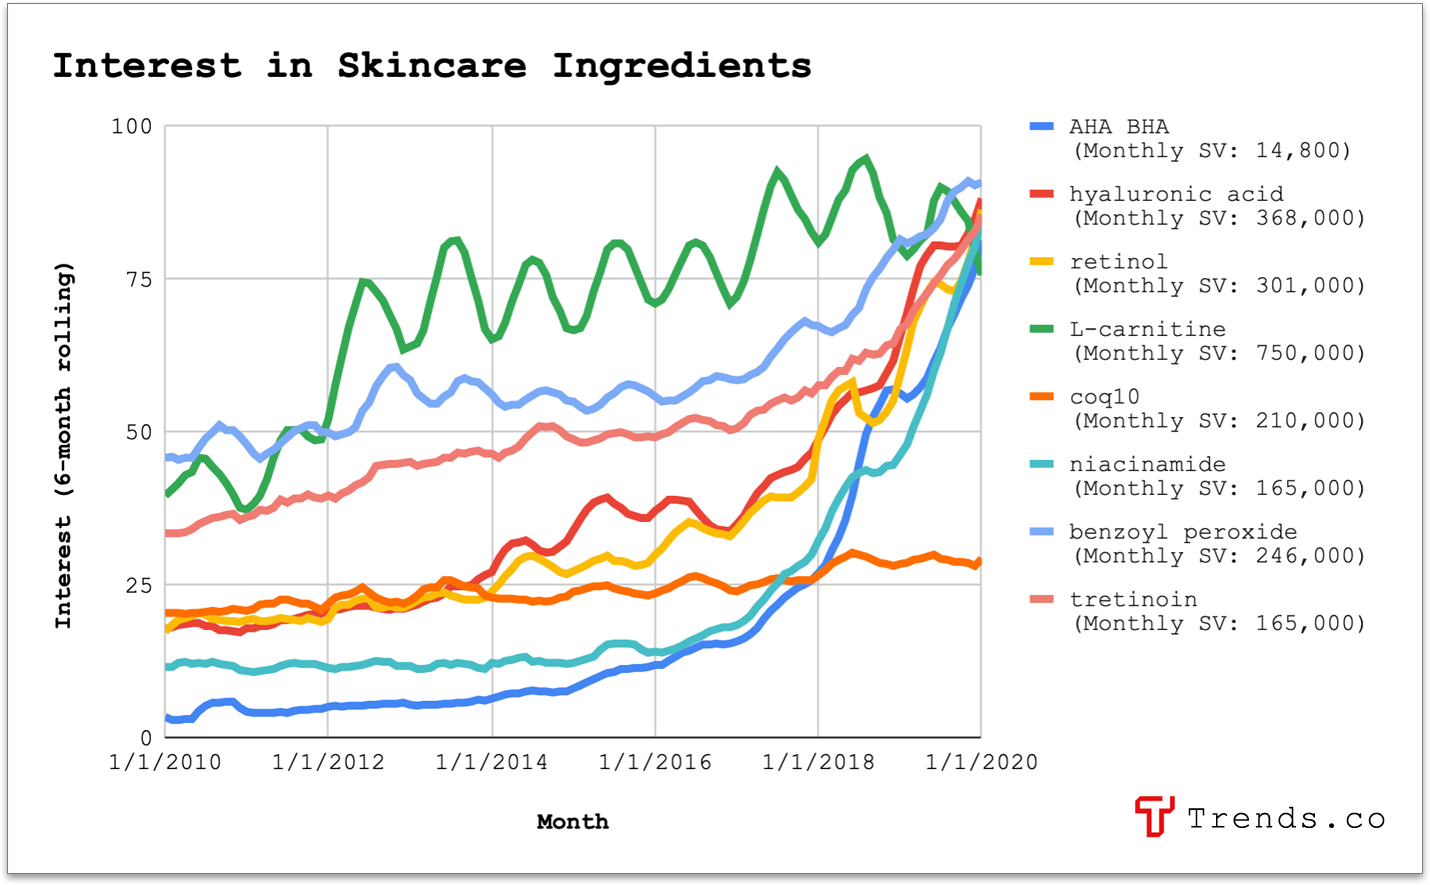 Interest in Skincare Ingredients signal